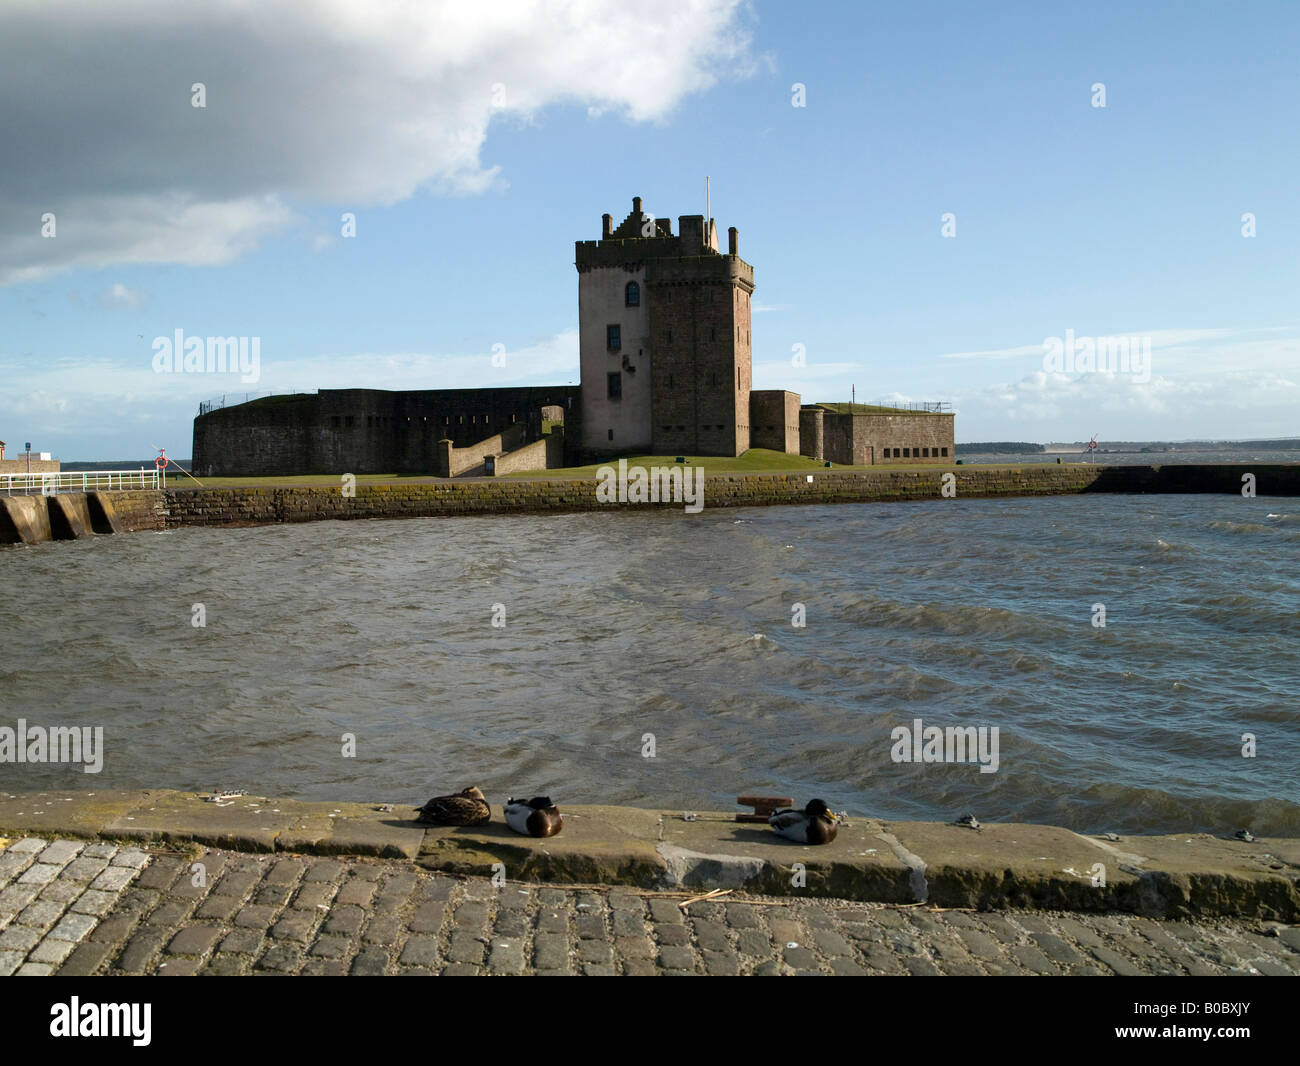 The Castle at Broughty Ferry Harbour, Dundee, Tayside, Scotland - Stock Image